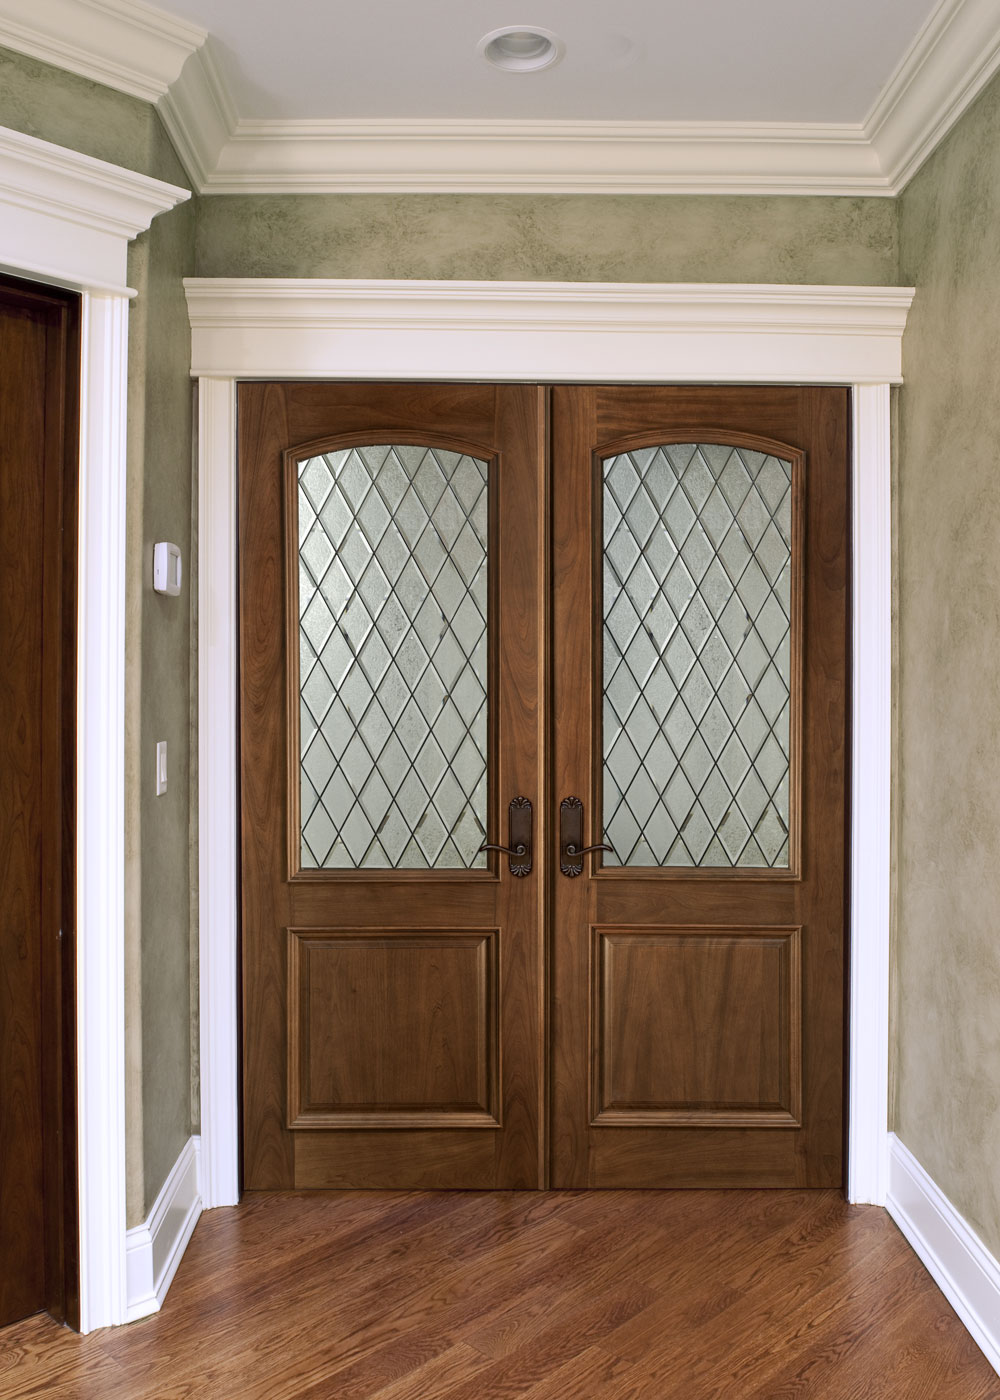 10 benefits of double door designs interior exterior ideas for Doors by design